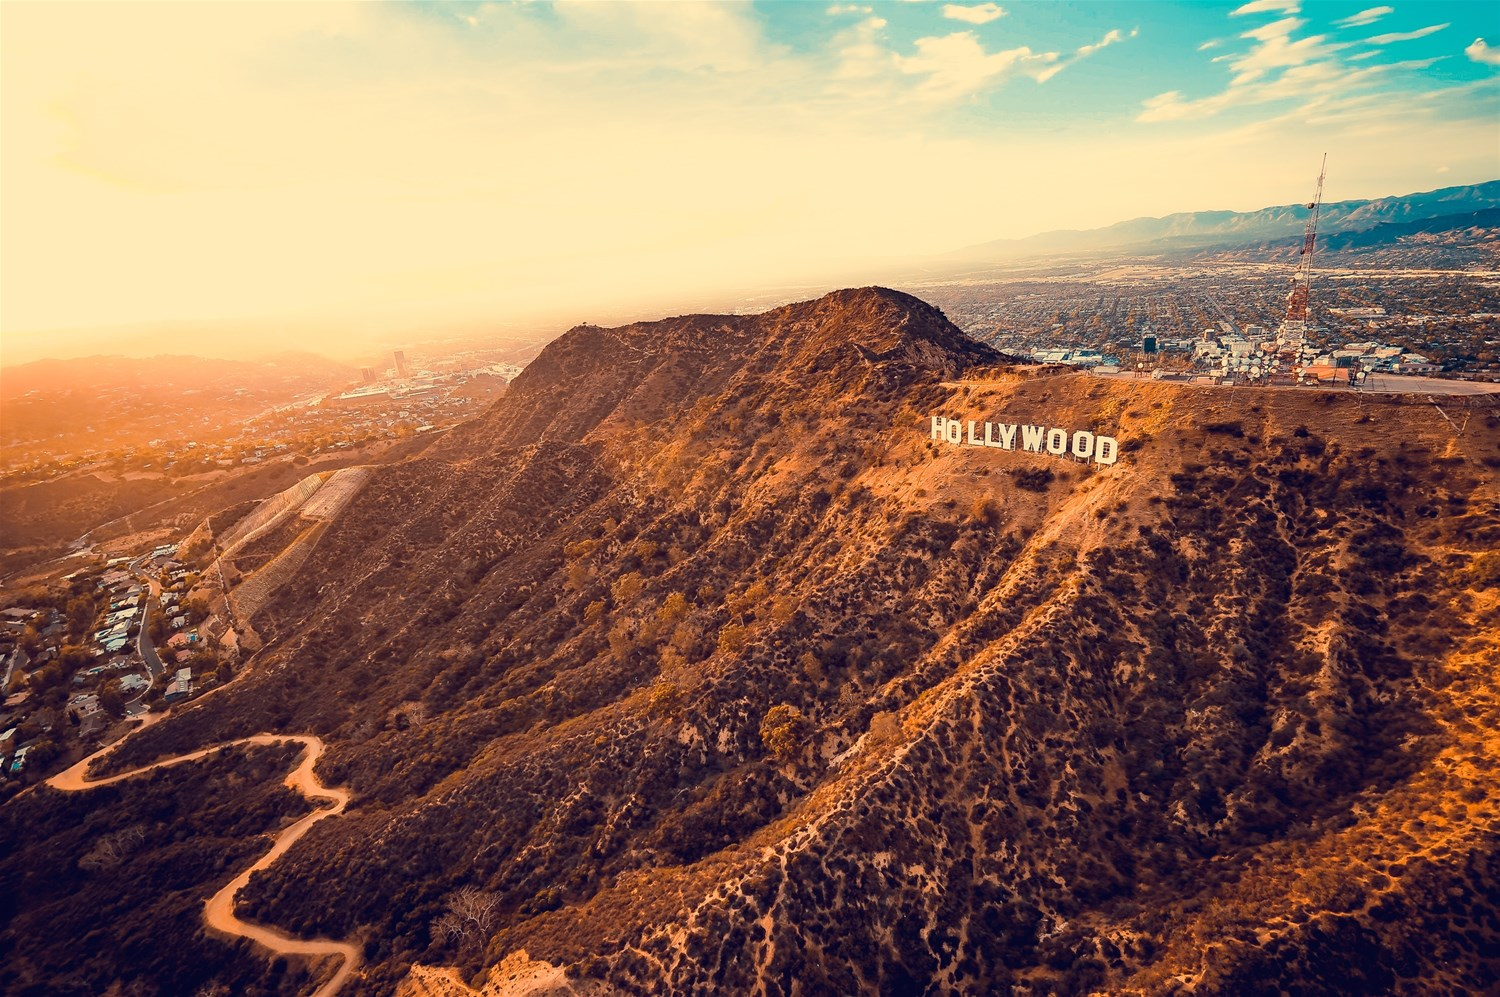 Hollywood - Your Los Angeles Holiday Star Attraction